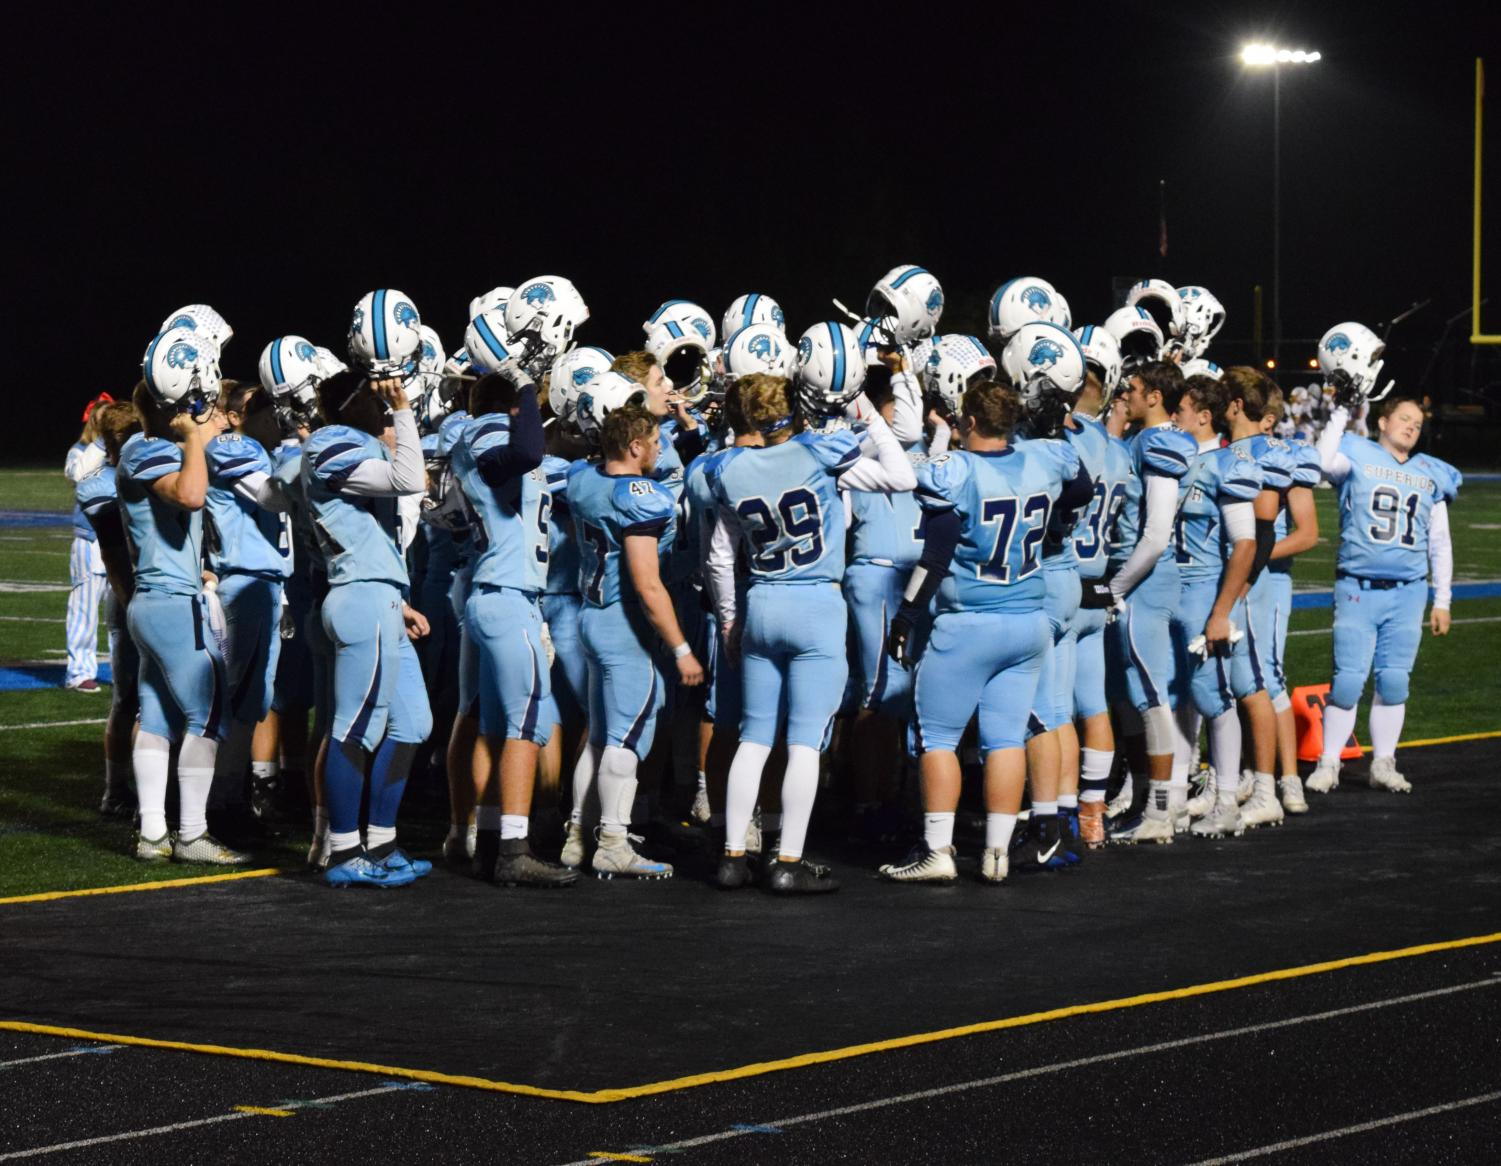 Cutline: Spartan football team huddles together as a team On Friday October 5th at Superior High sports complex